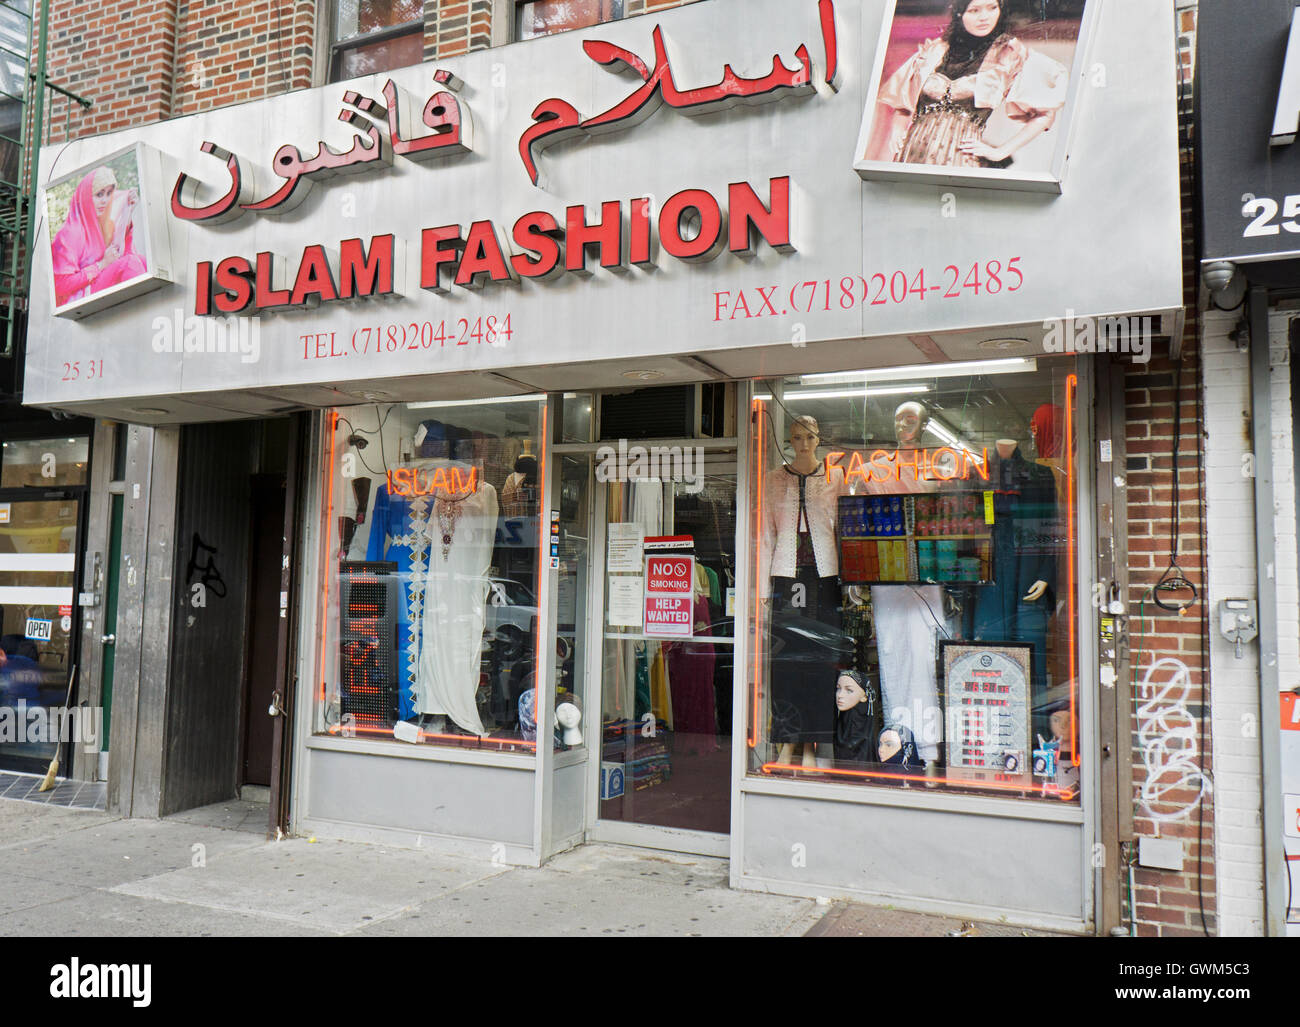 The ISLAM FASHION clothing store on Steinway Street in the Little